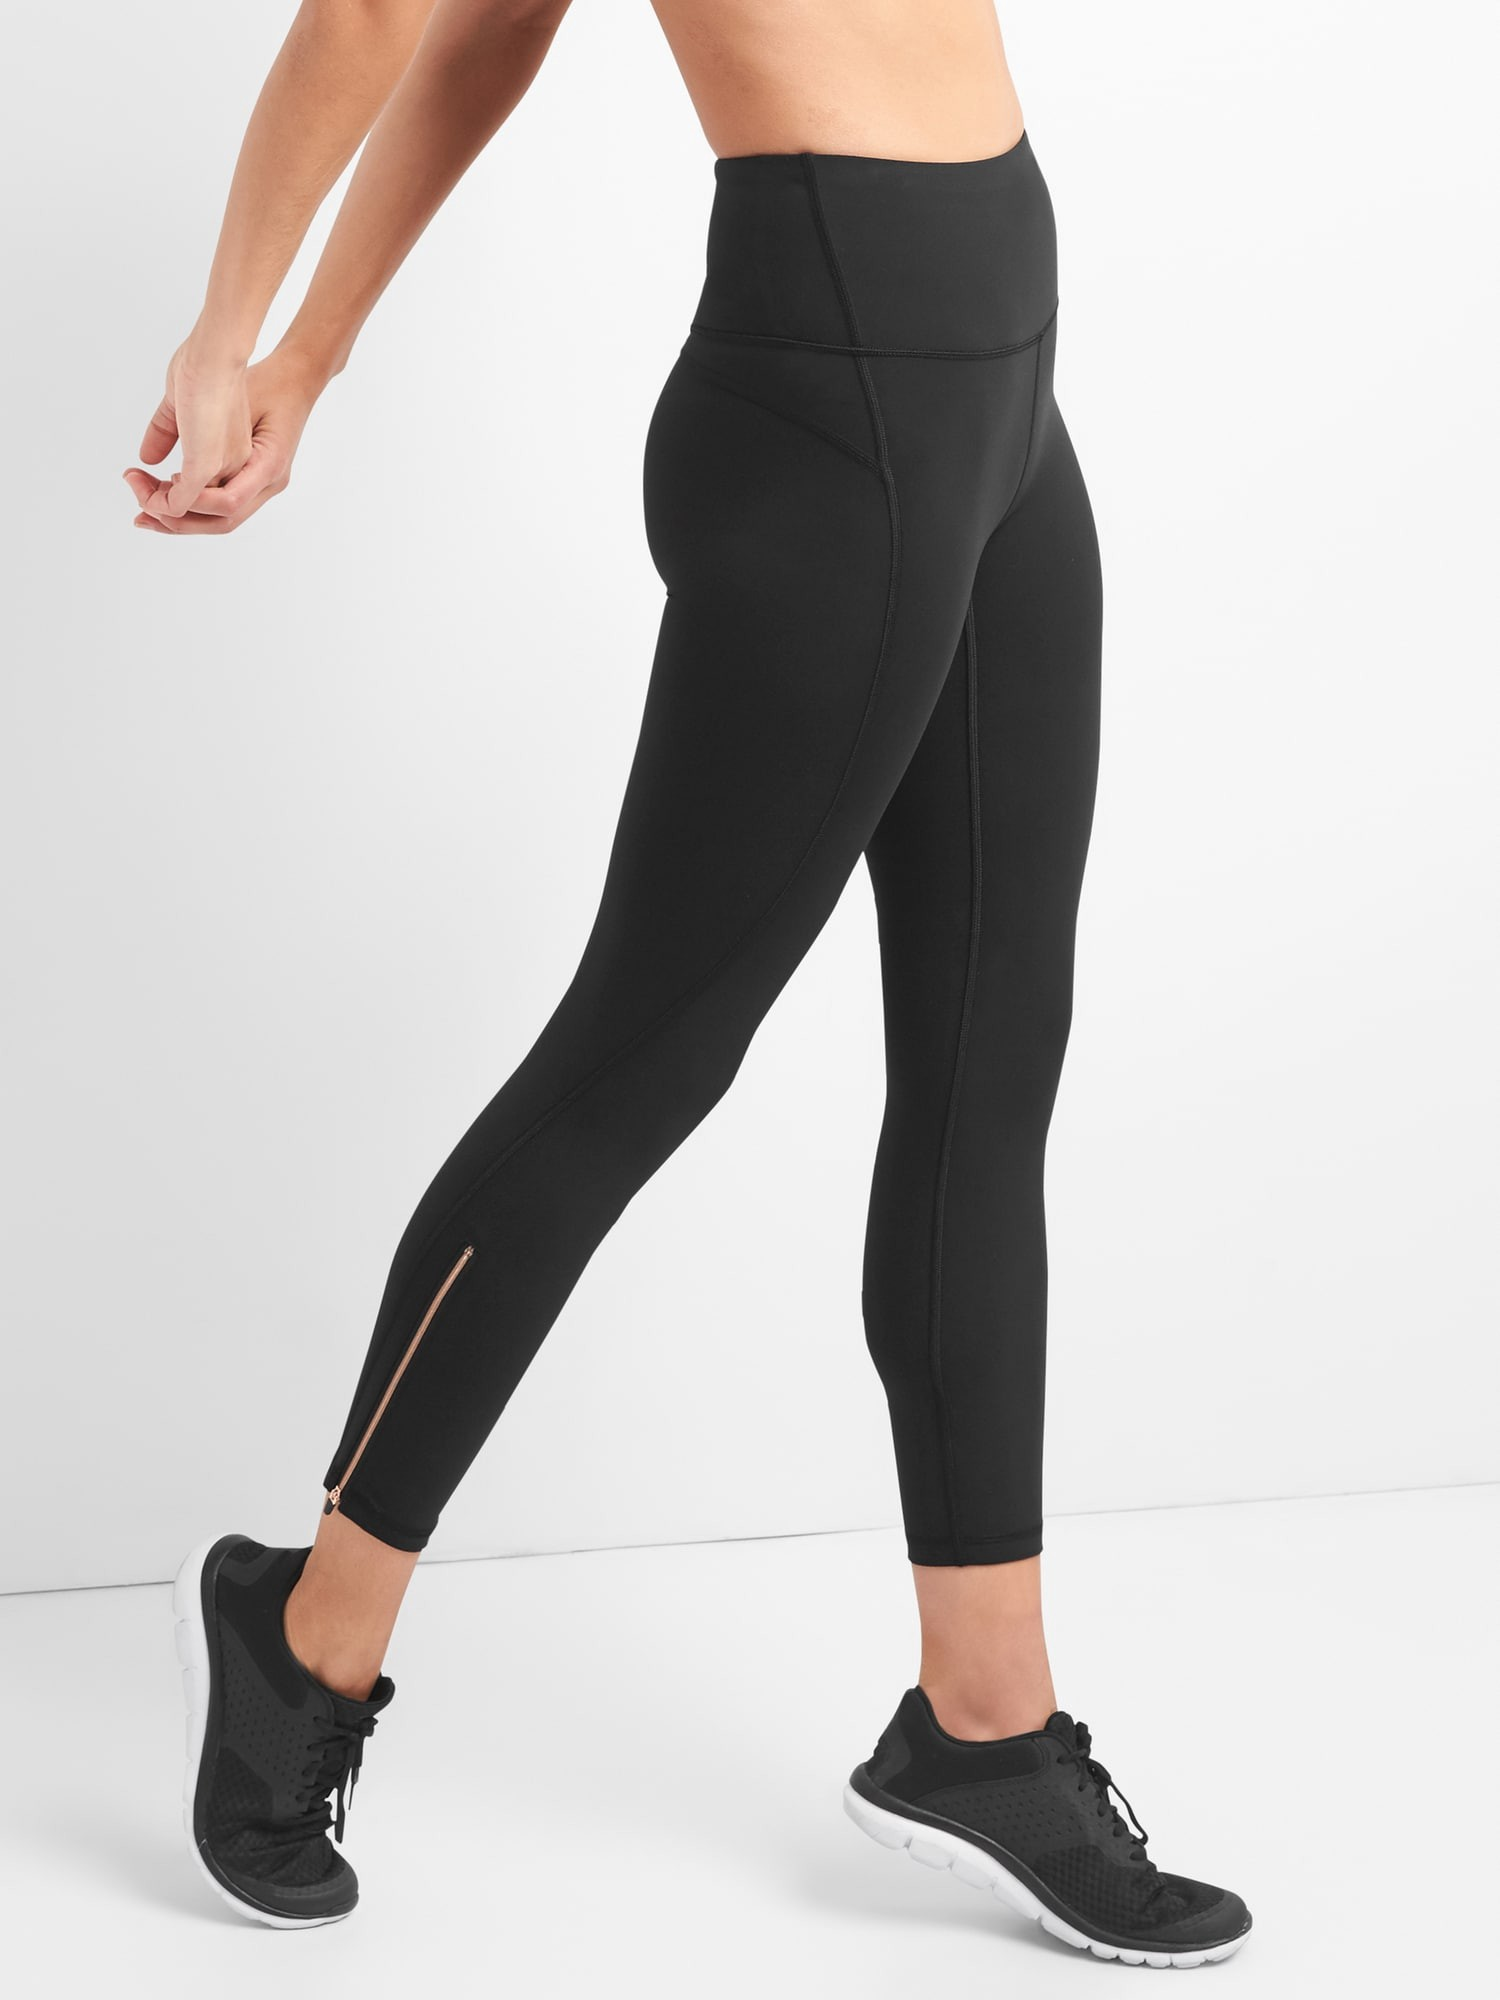 f63fa6f827c9c Gap Womens Gfast High Rise Blackout Zip-Ankle 7/8 Leggings - True Black Xs  Gold